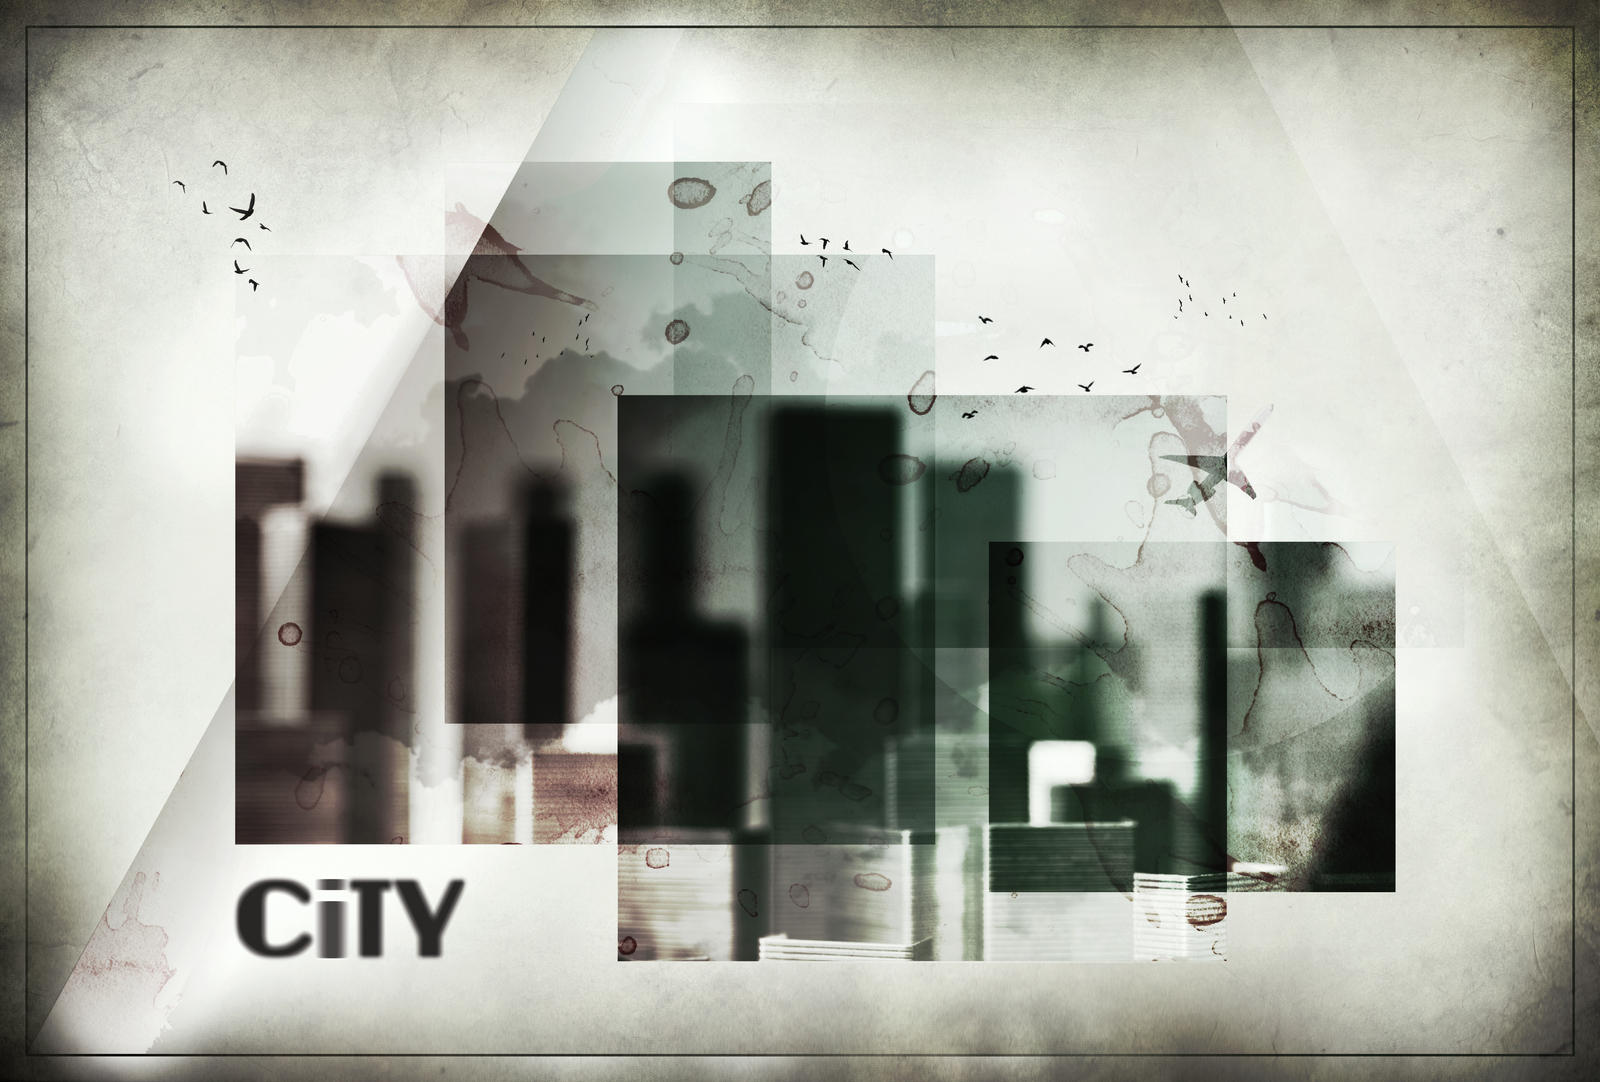 The City by Art-ography